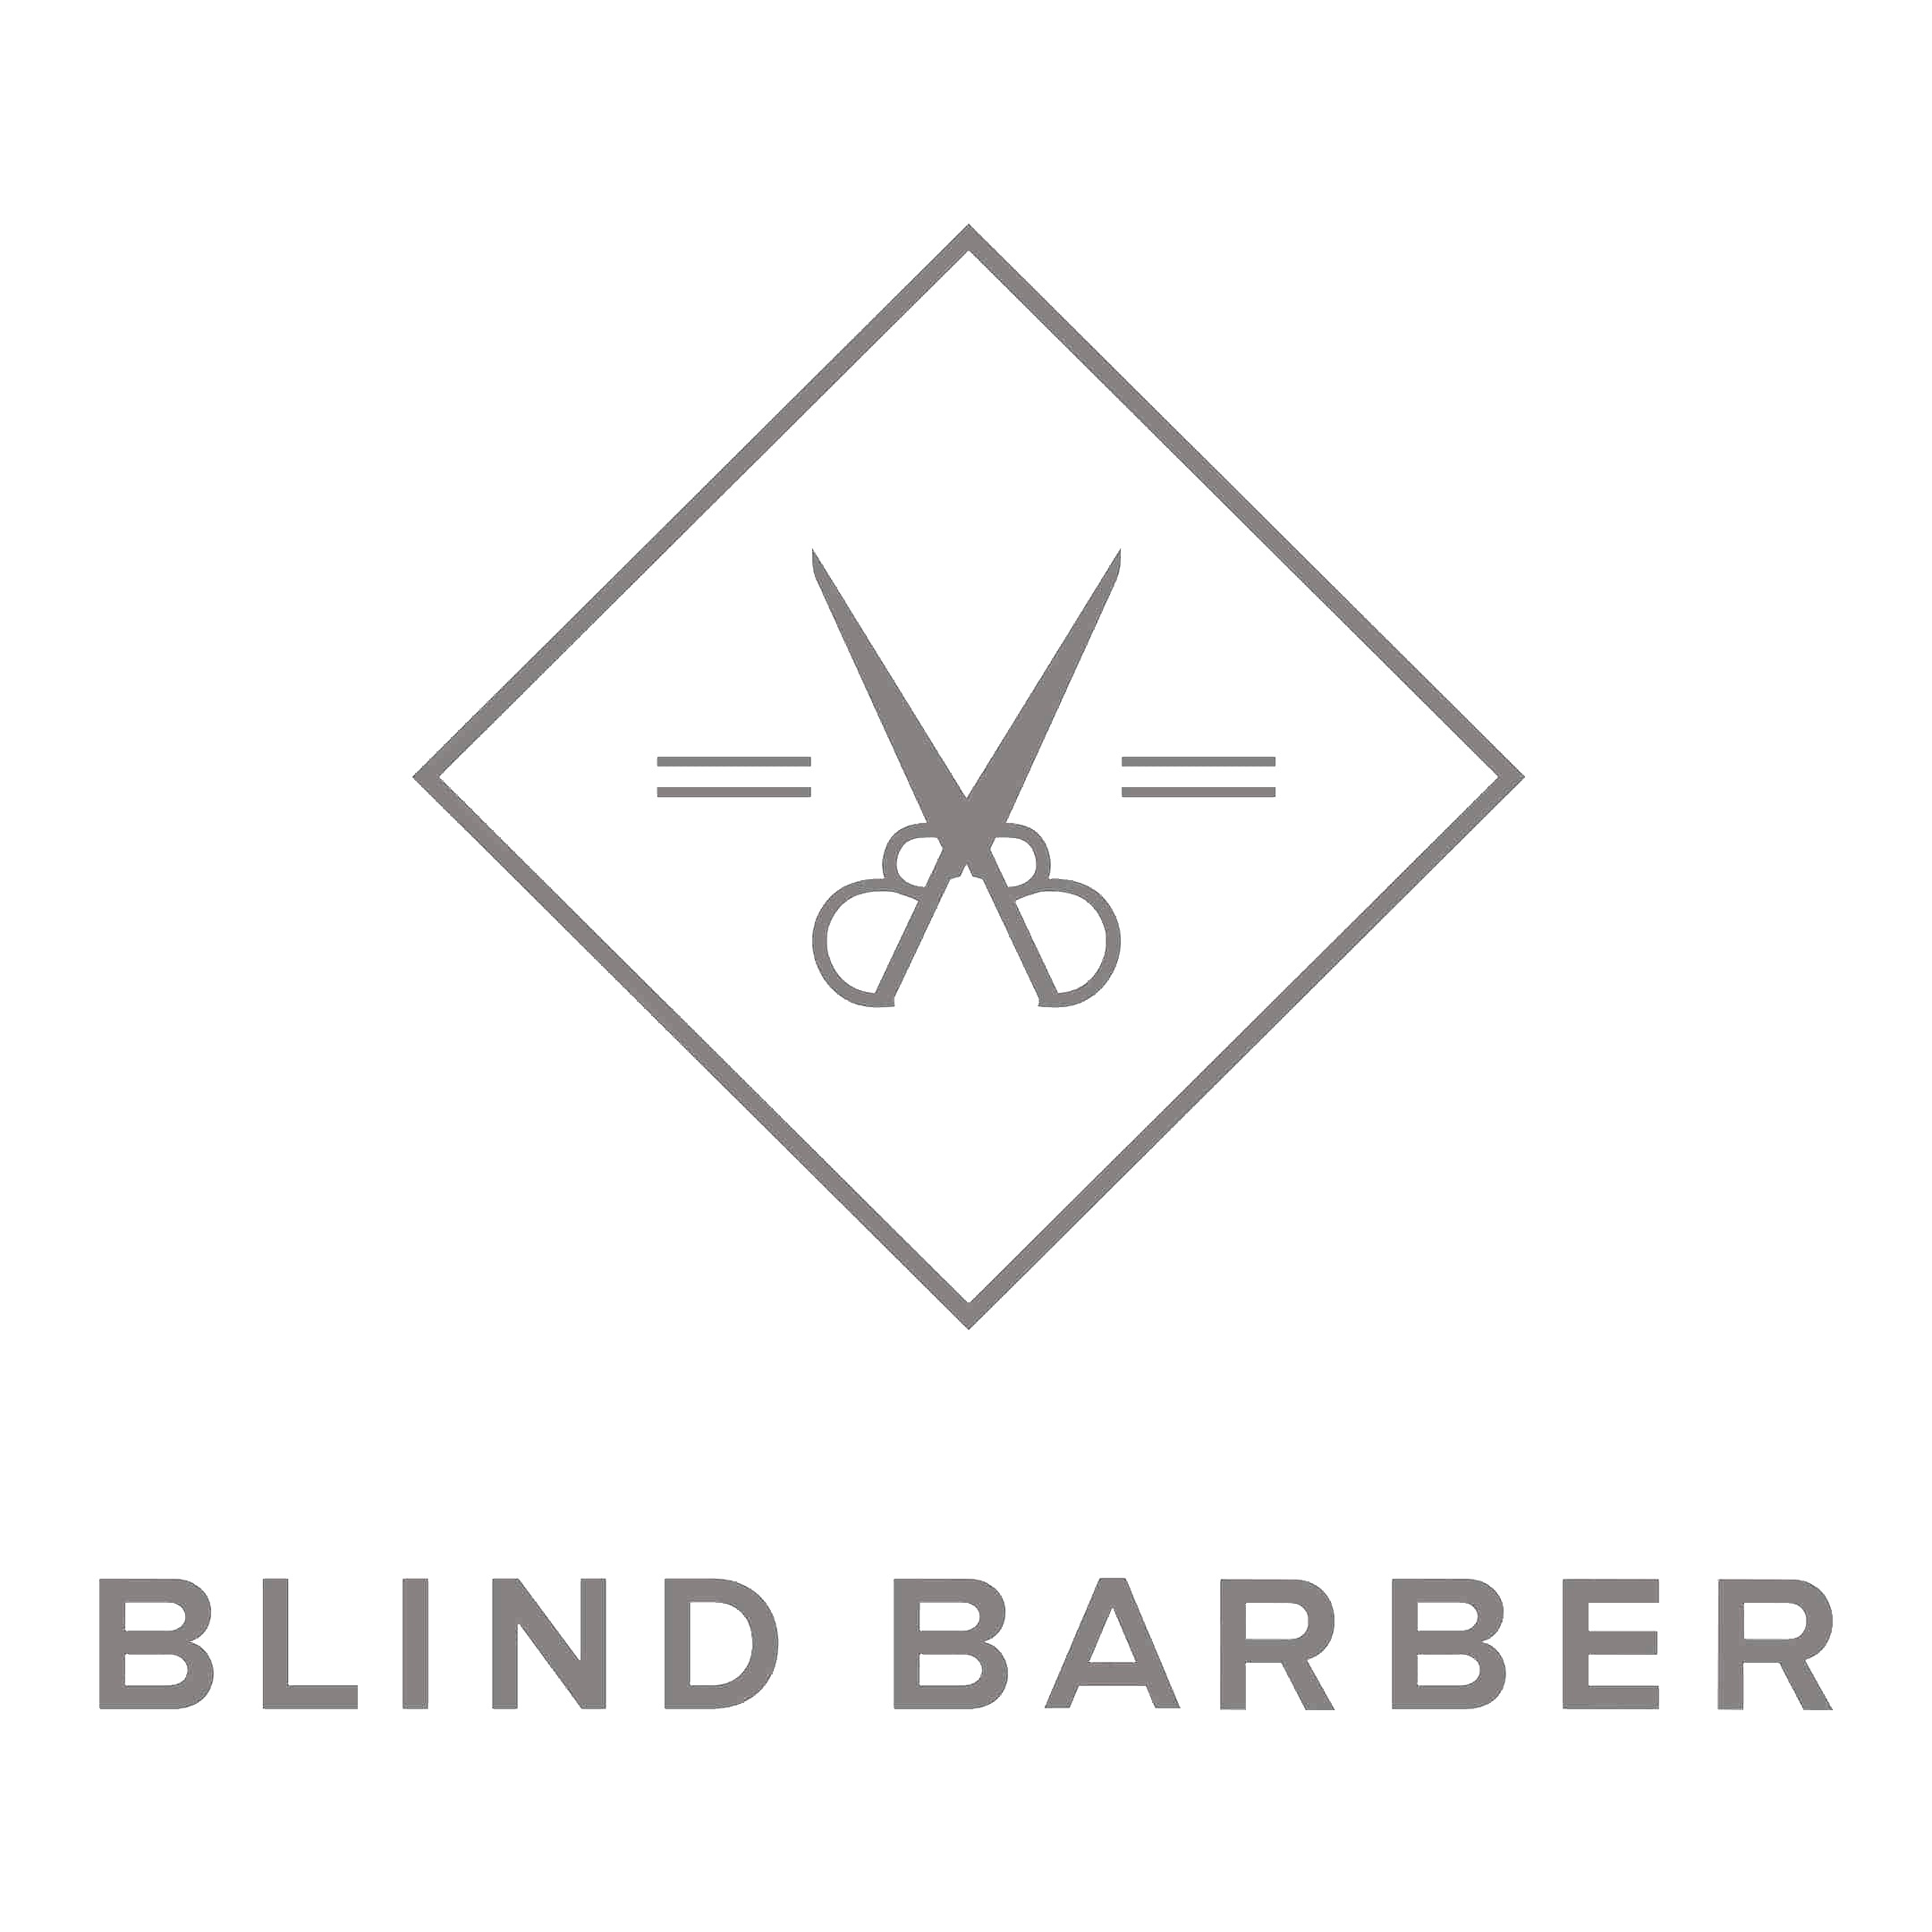 Blind-Barber-Logo.jpg